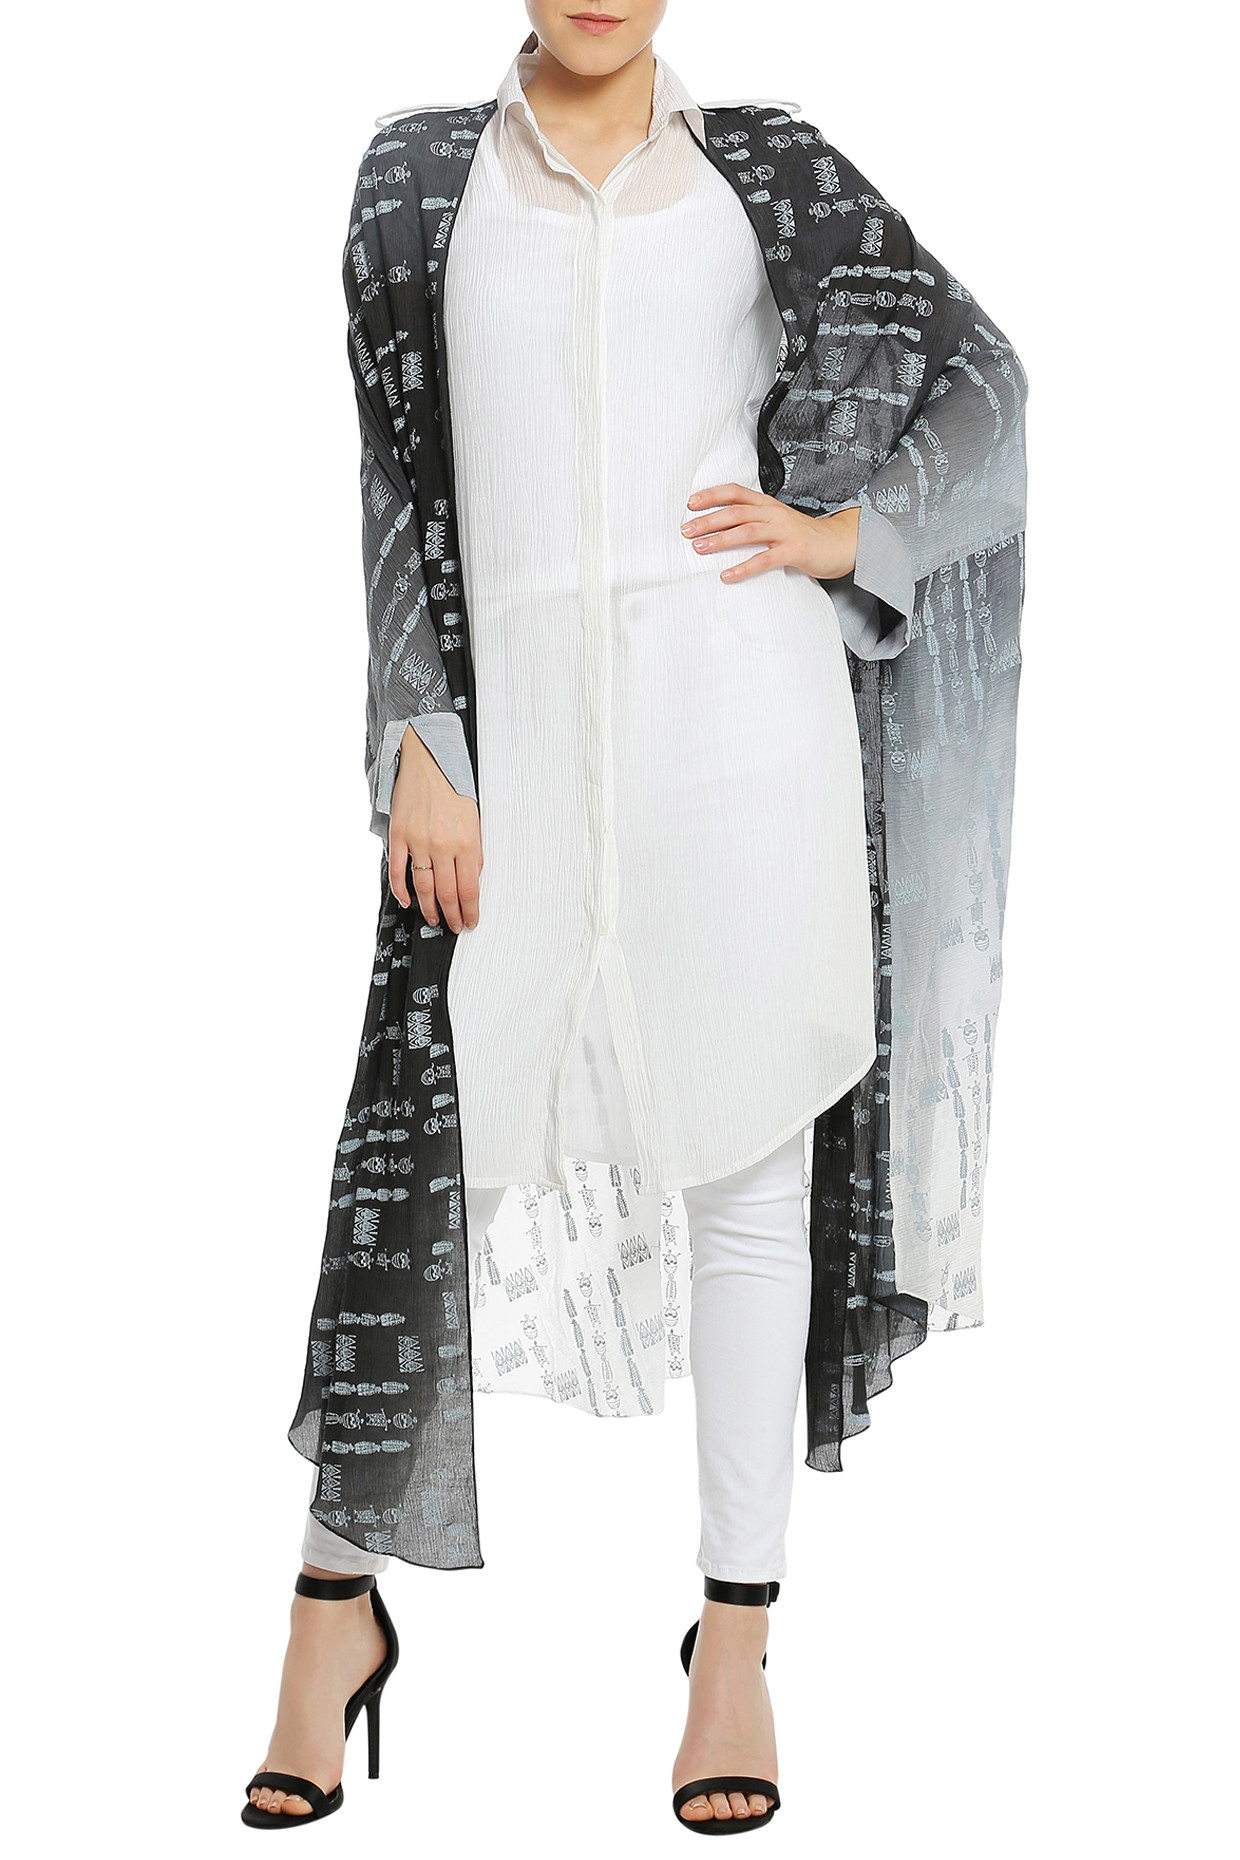 Black Ombre Printed Double Layered Shirt by Masaba